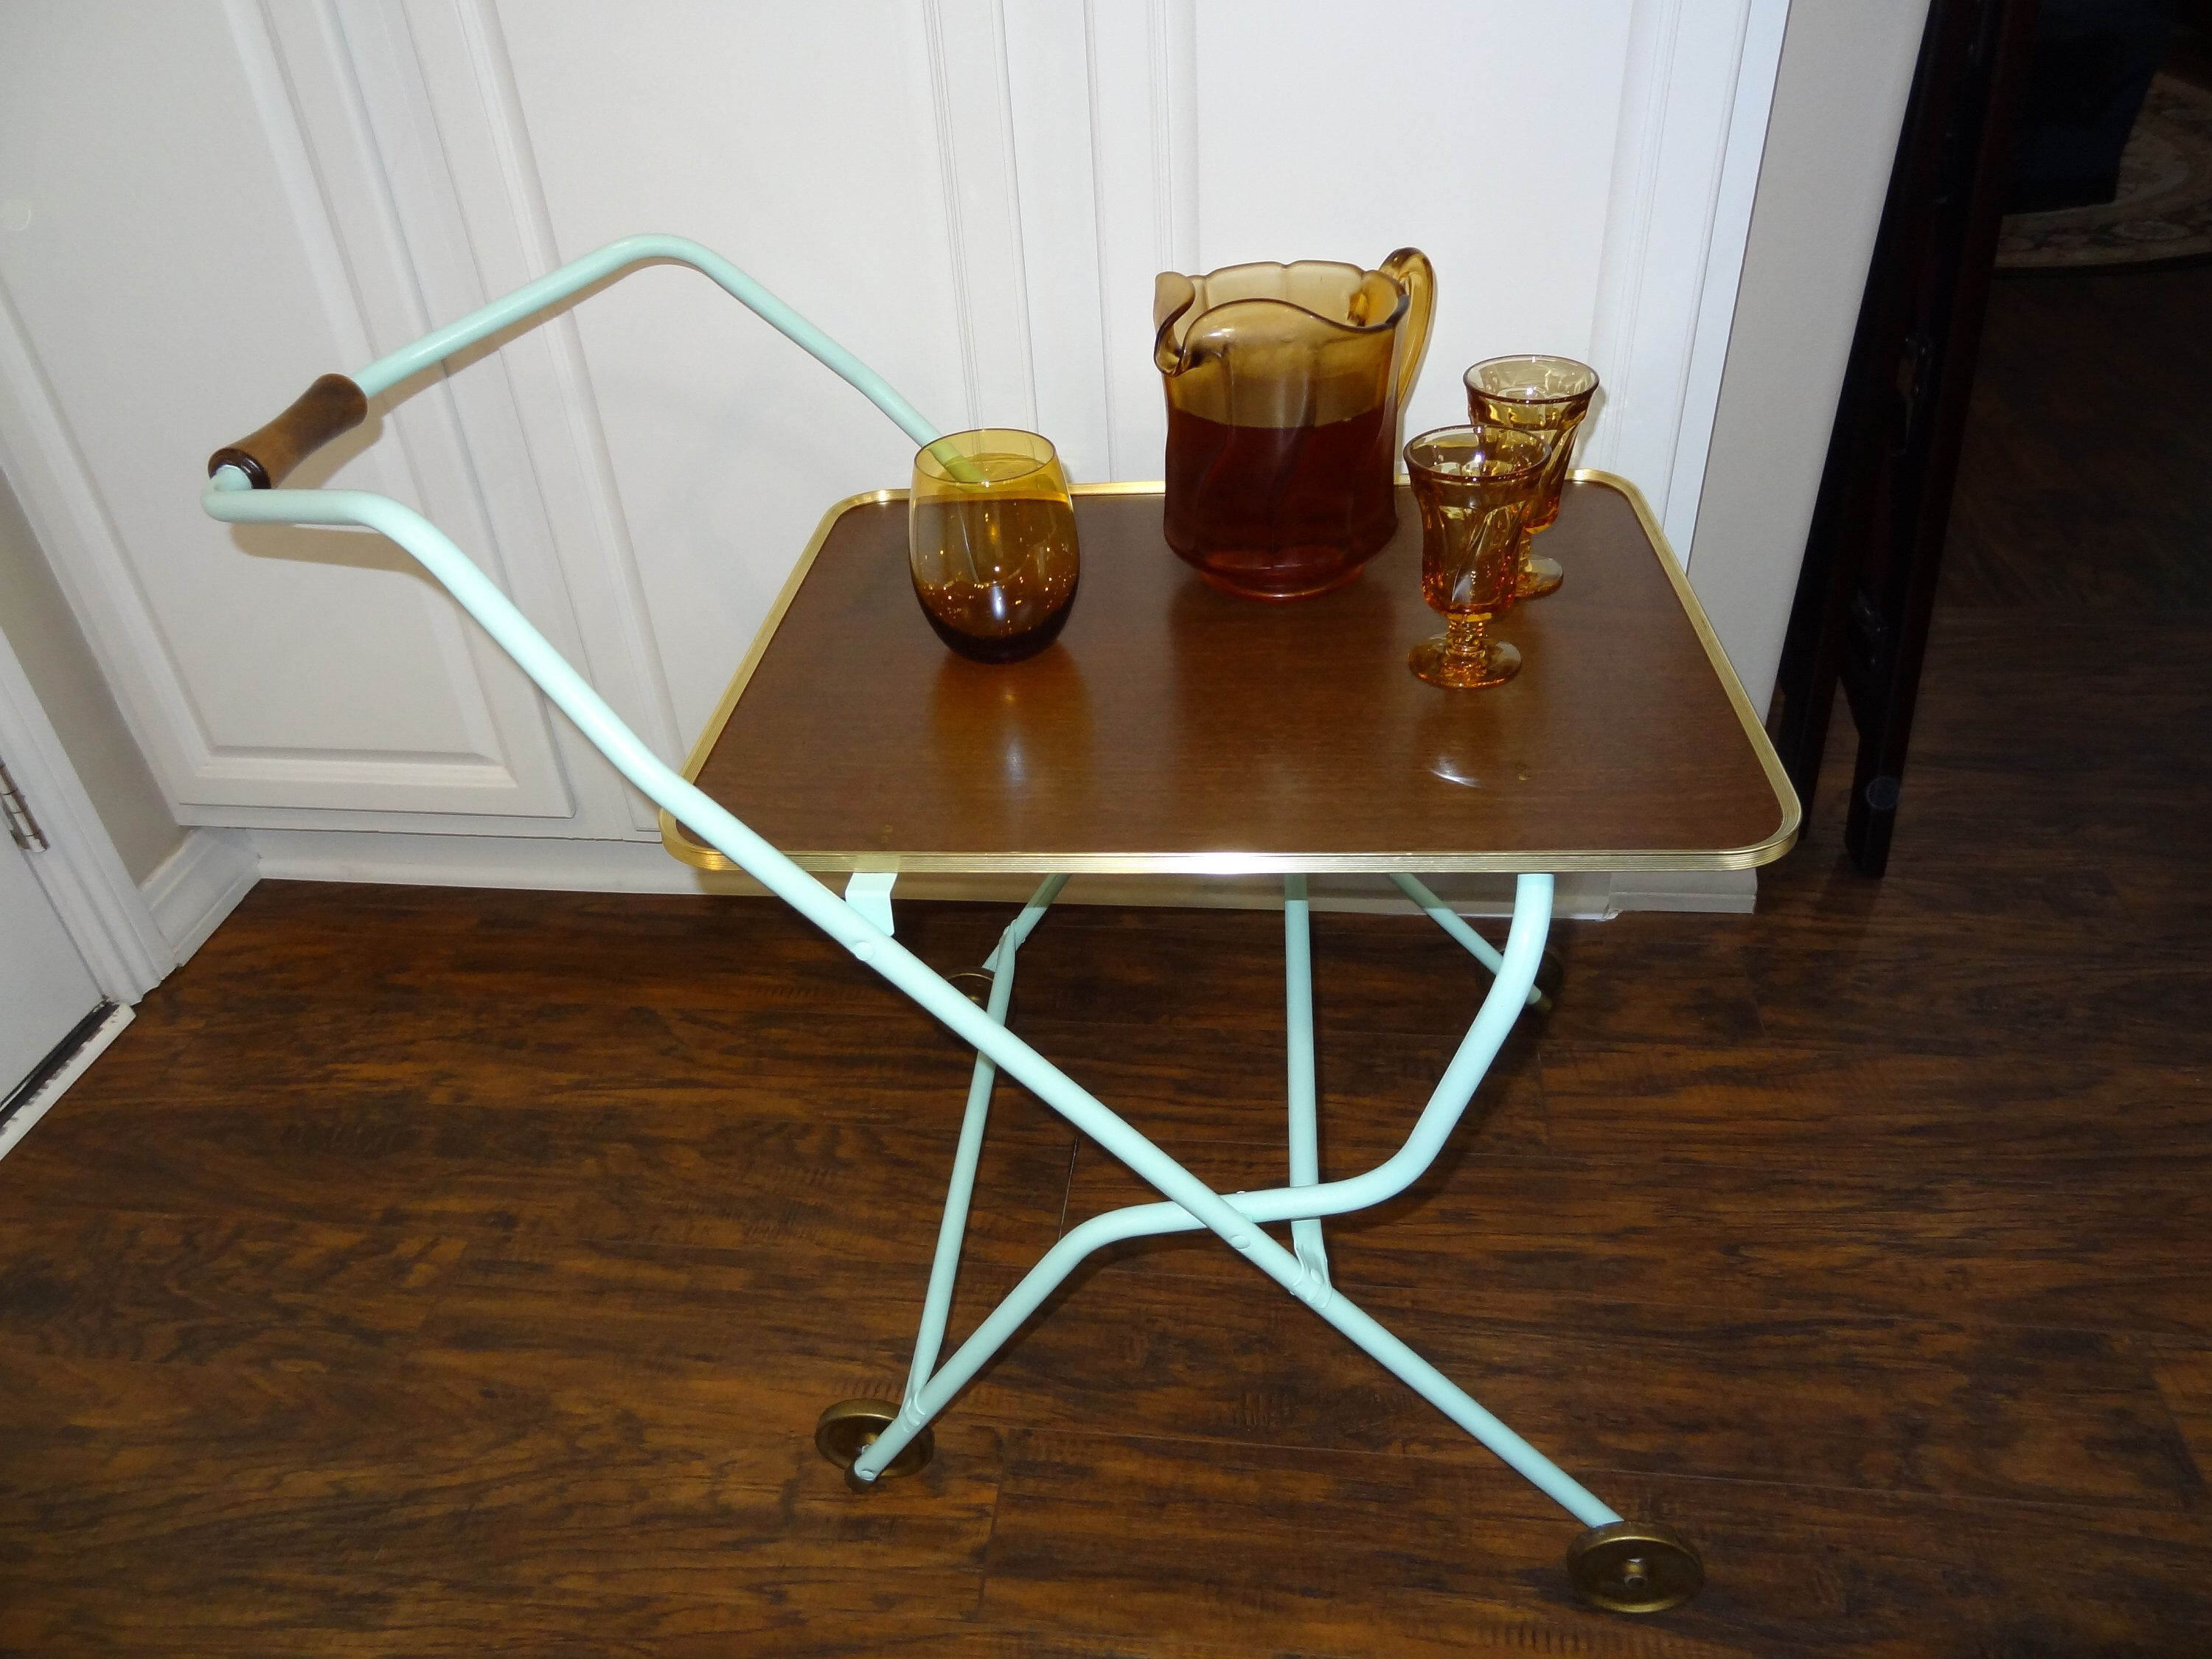 Mid Century Portable Folding Rolling Cart Serving Tray With Wheels And Formica Tray Bar Cart Folding Tray Table In 2020 Tray Table Rolling Cart Formica